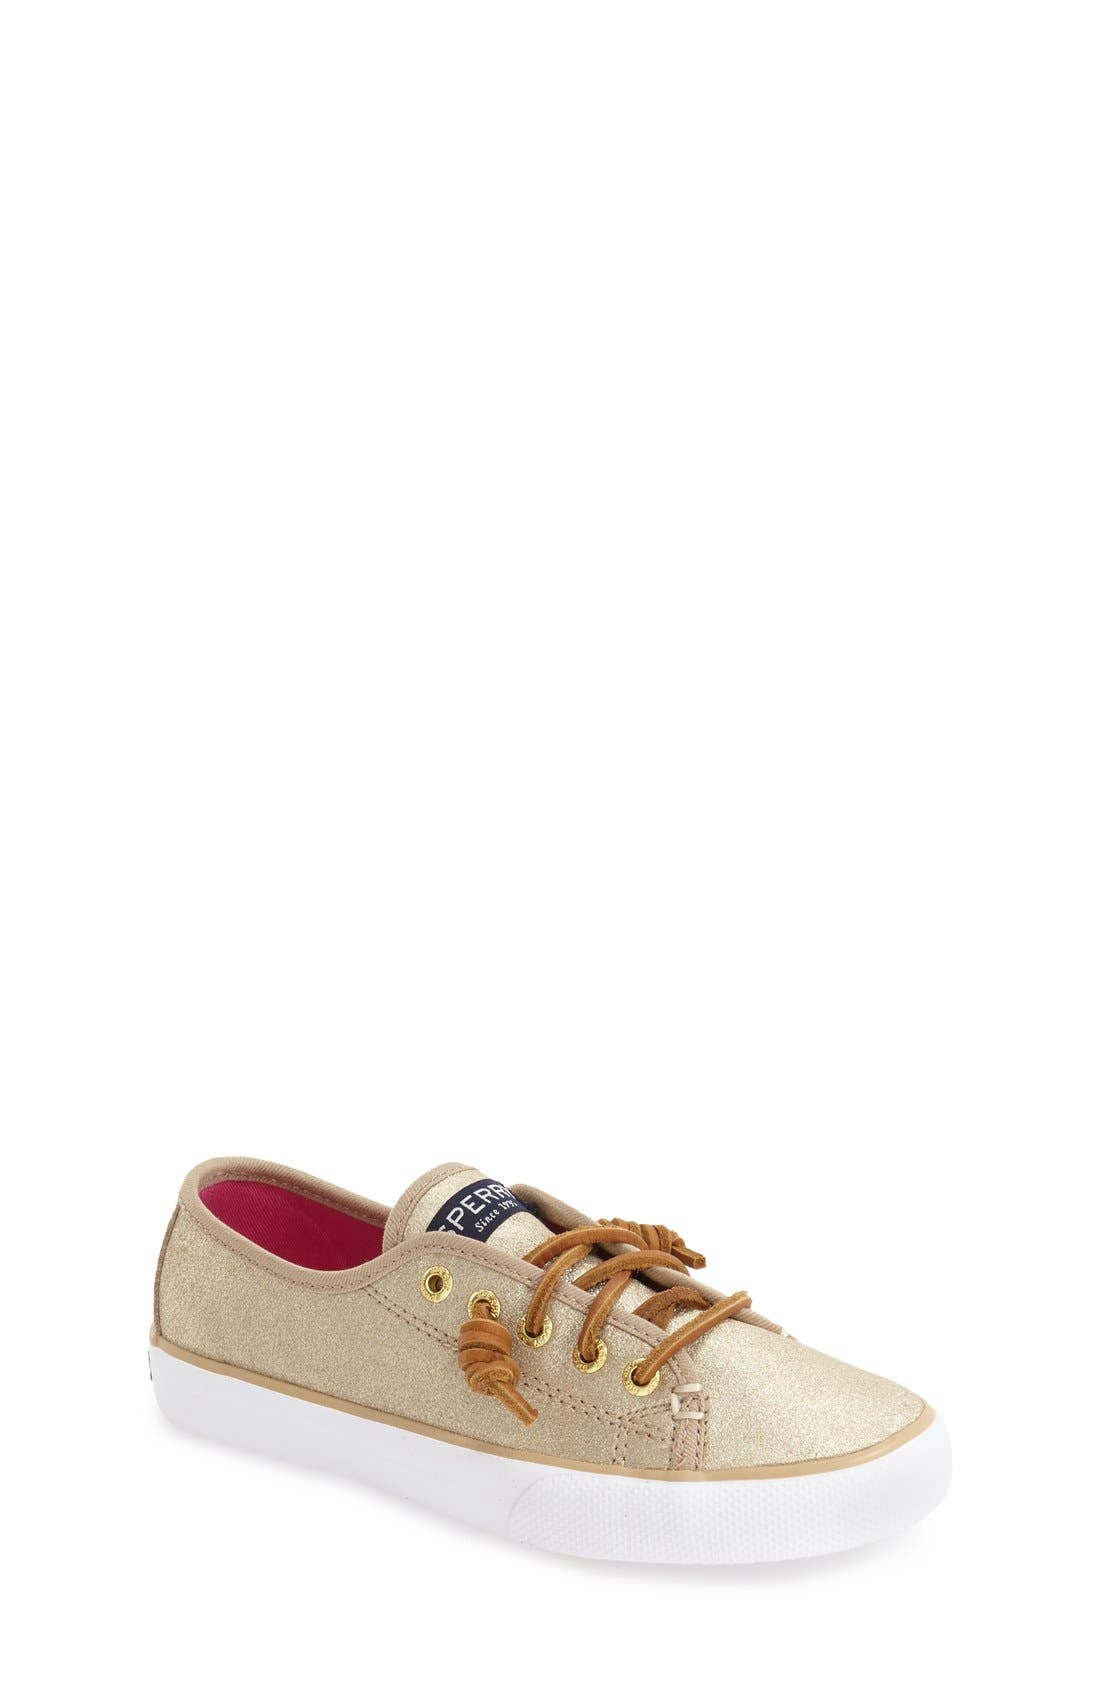 Sperry Kids Seacoast Slip-On Sneaker (Little Kid & Big Kid)